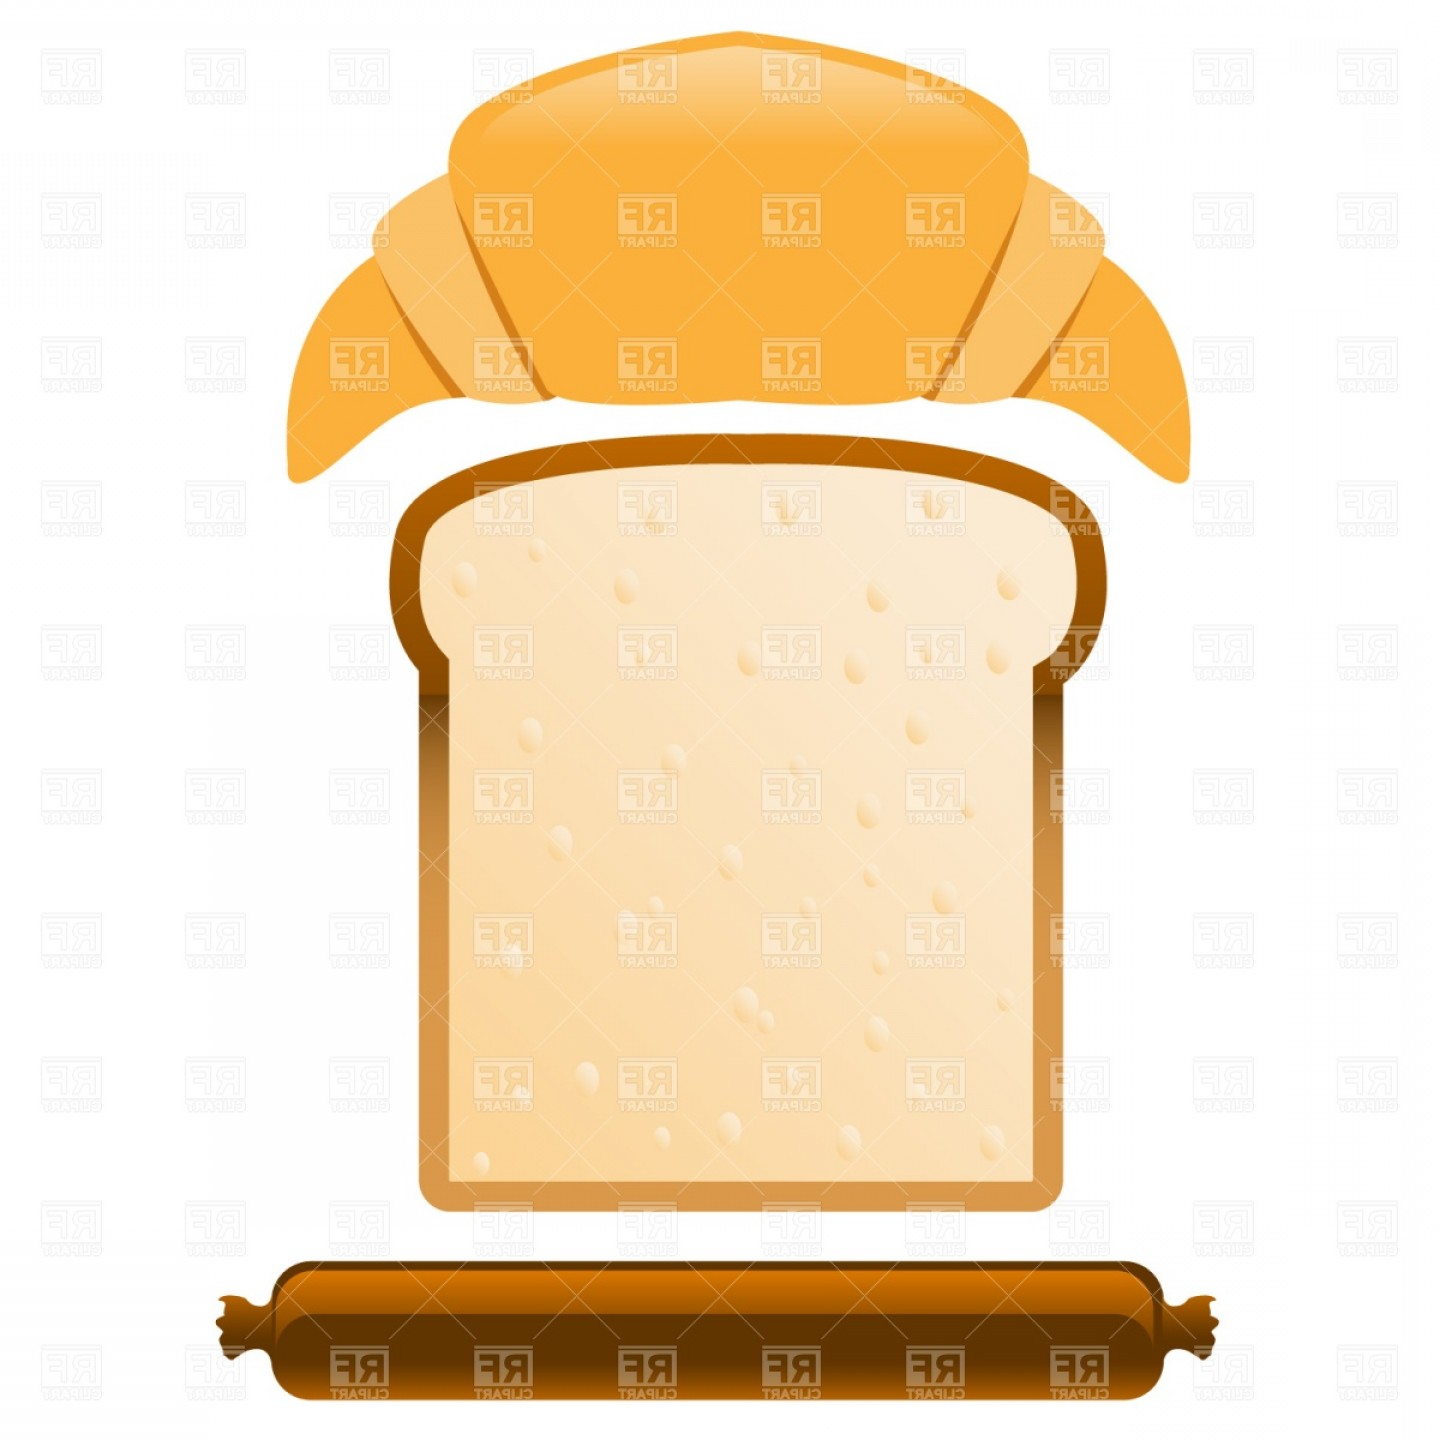 Wrapped loaf ofbread clipart clip freeuse stock Croissant Slice Of Bread And Sausage Vector Clipart | SOIDERGI clip freeuse stock